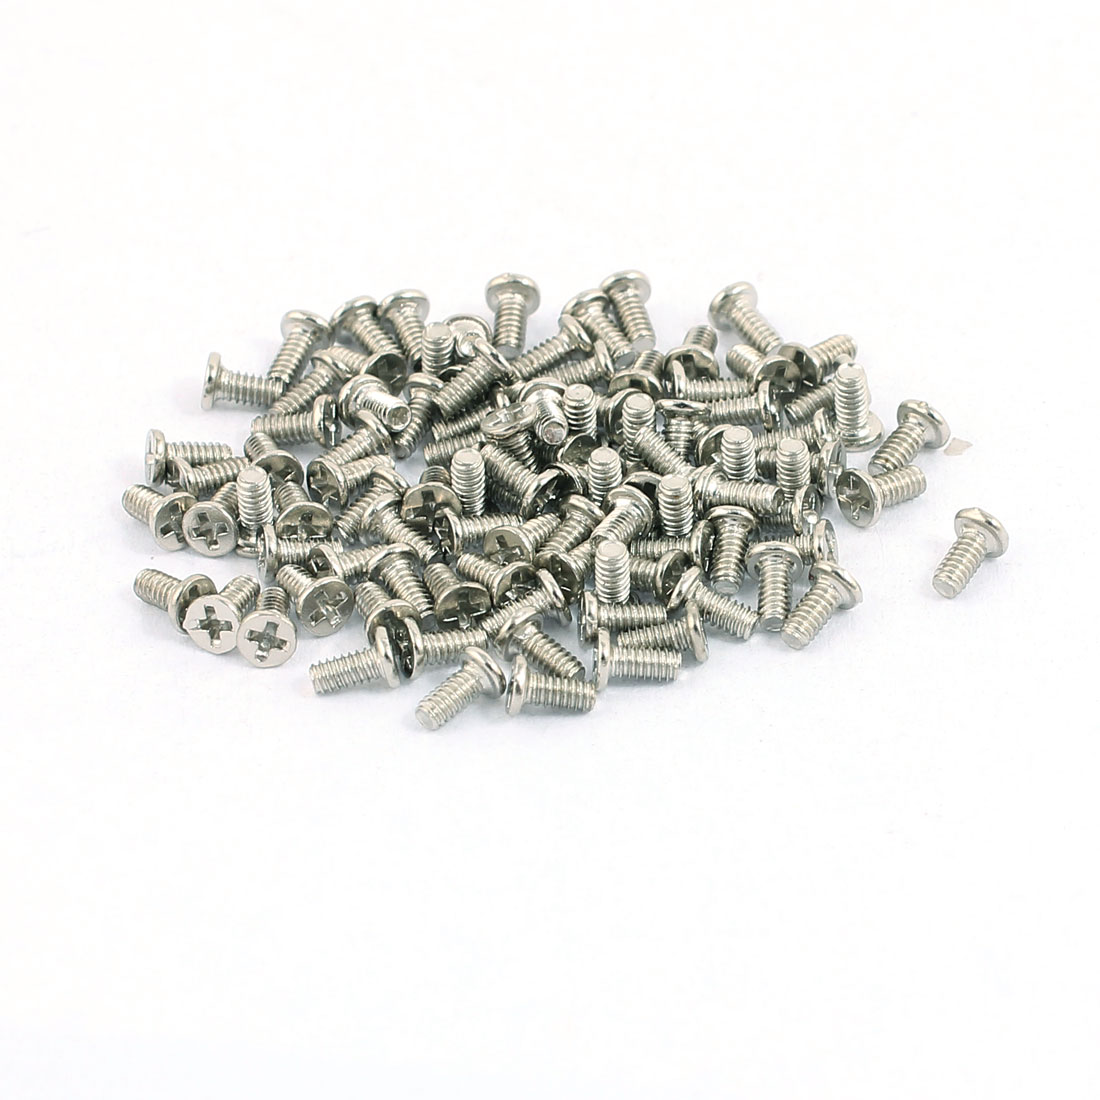 100pcs M1.4x2.5mm Stainless Steel Countersunk Flat Head Phillips Machine Screws Bolts